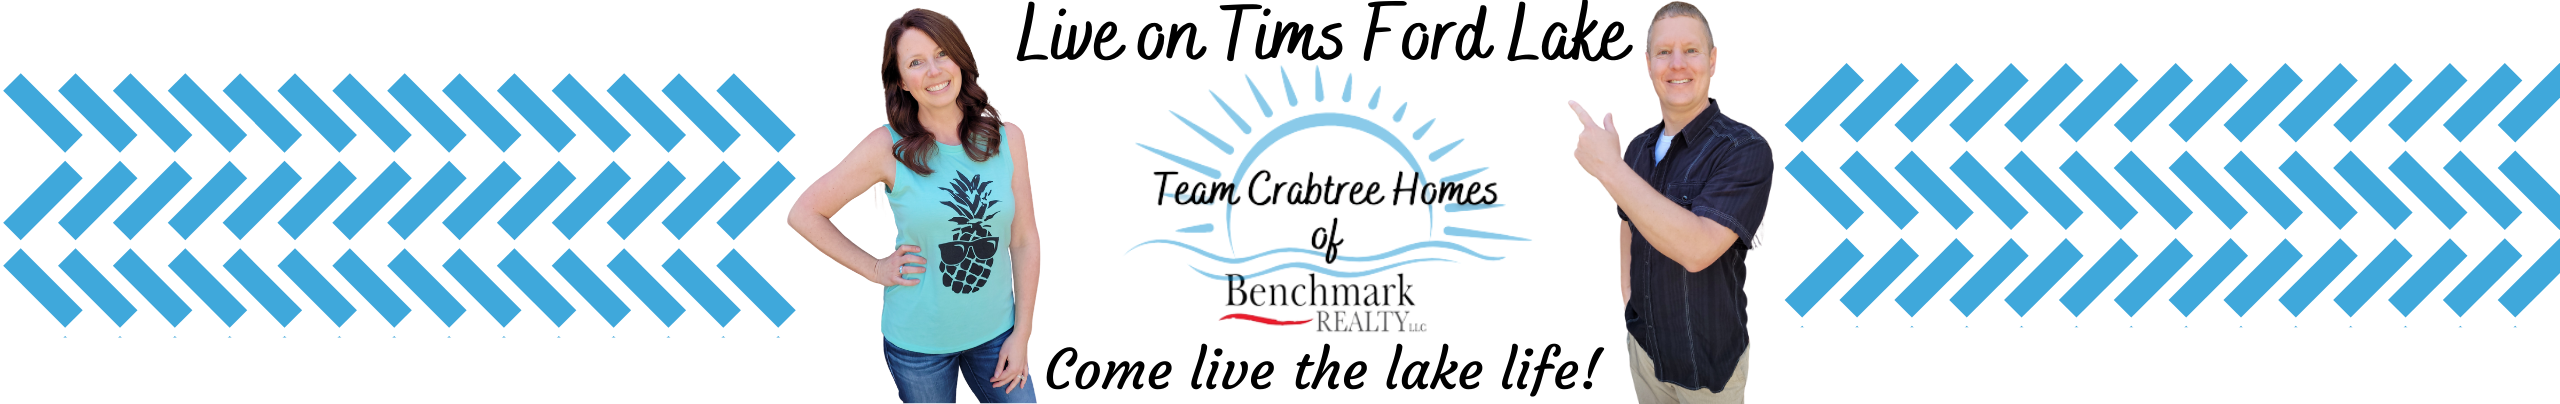 Tims Ford Lake Homes for Sale